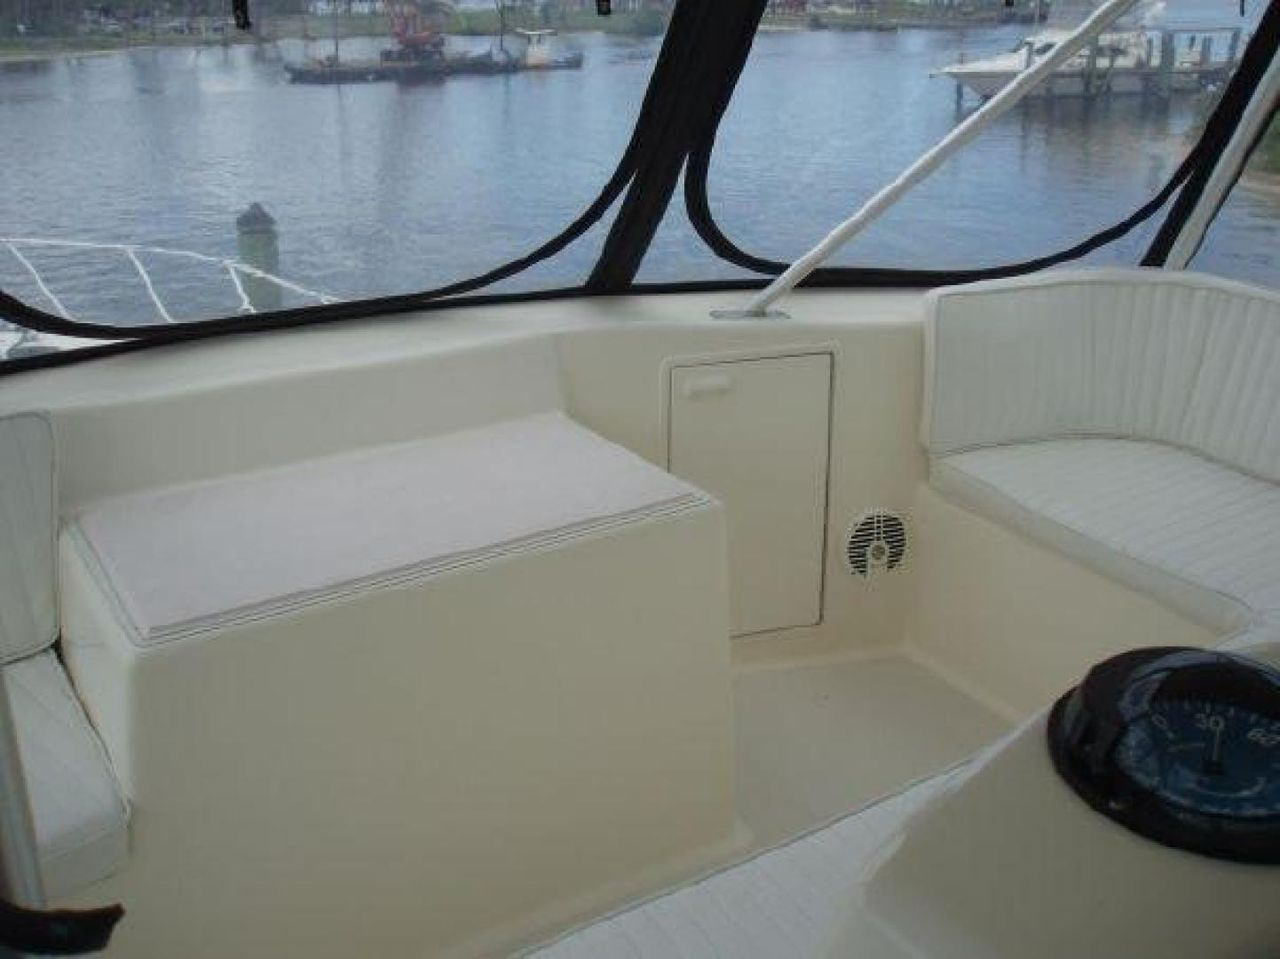 1991 Used Ocean Yachts Sports Fishing Boat For Sale - $199,900